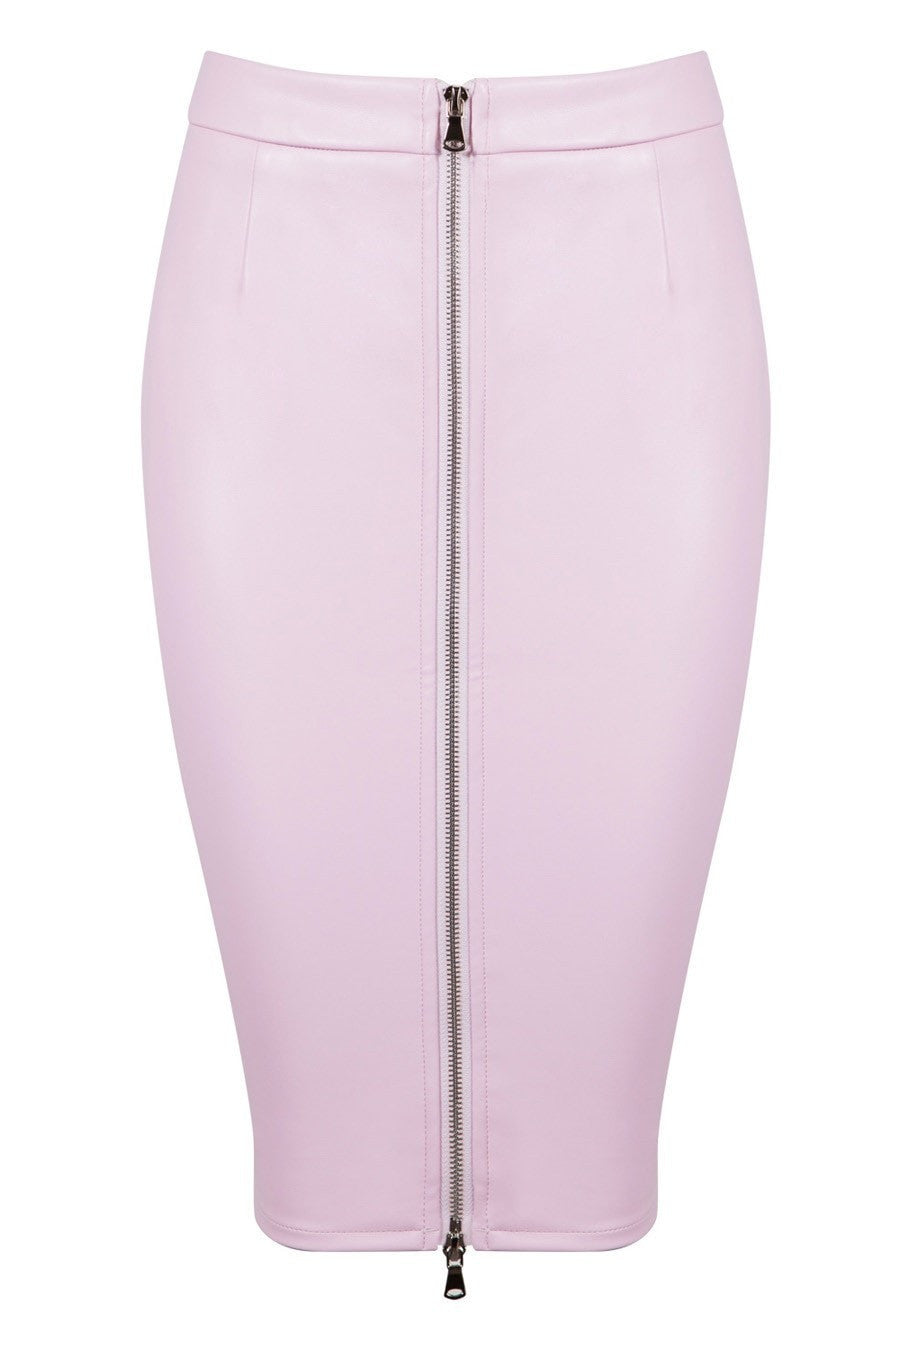 Honey Couture ZOE Pink Vegan Leather Zip Front Pencil Skirt Australian Online Store One Honey Boutique AfterPay ZipPay